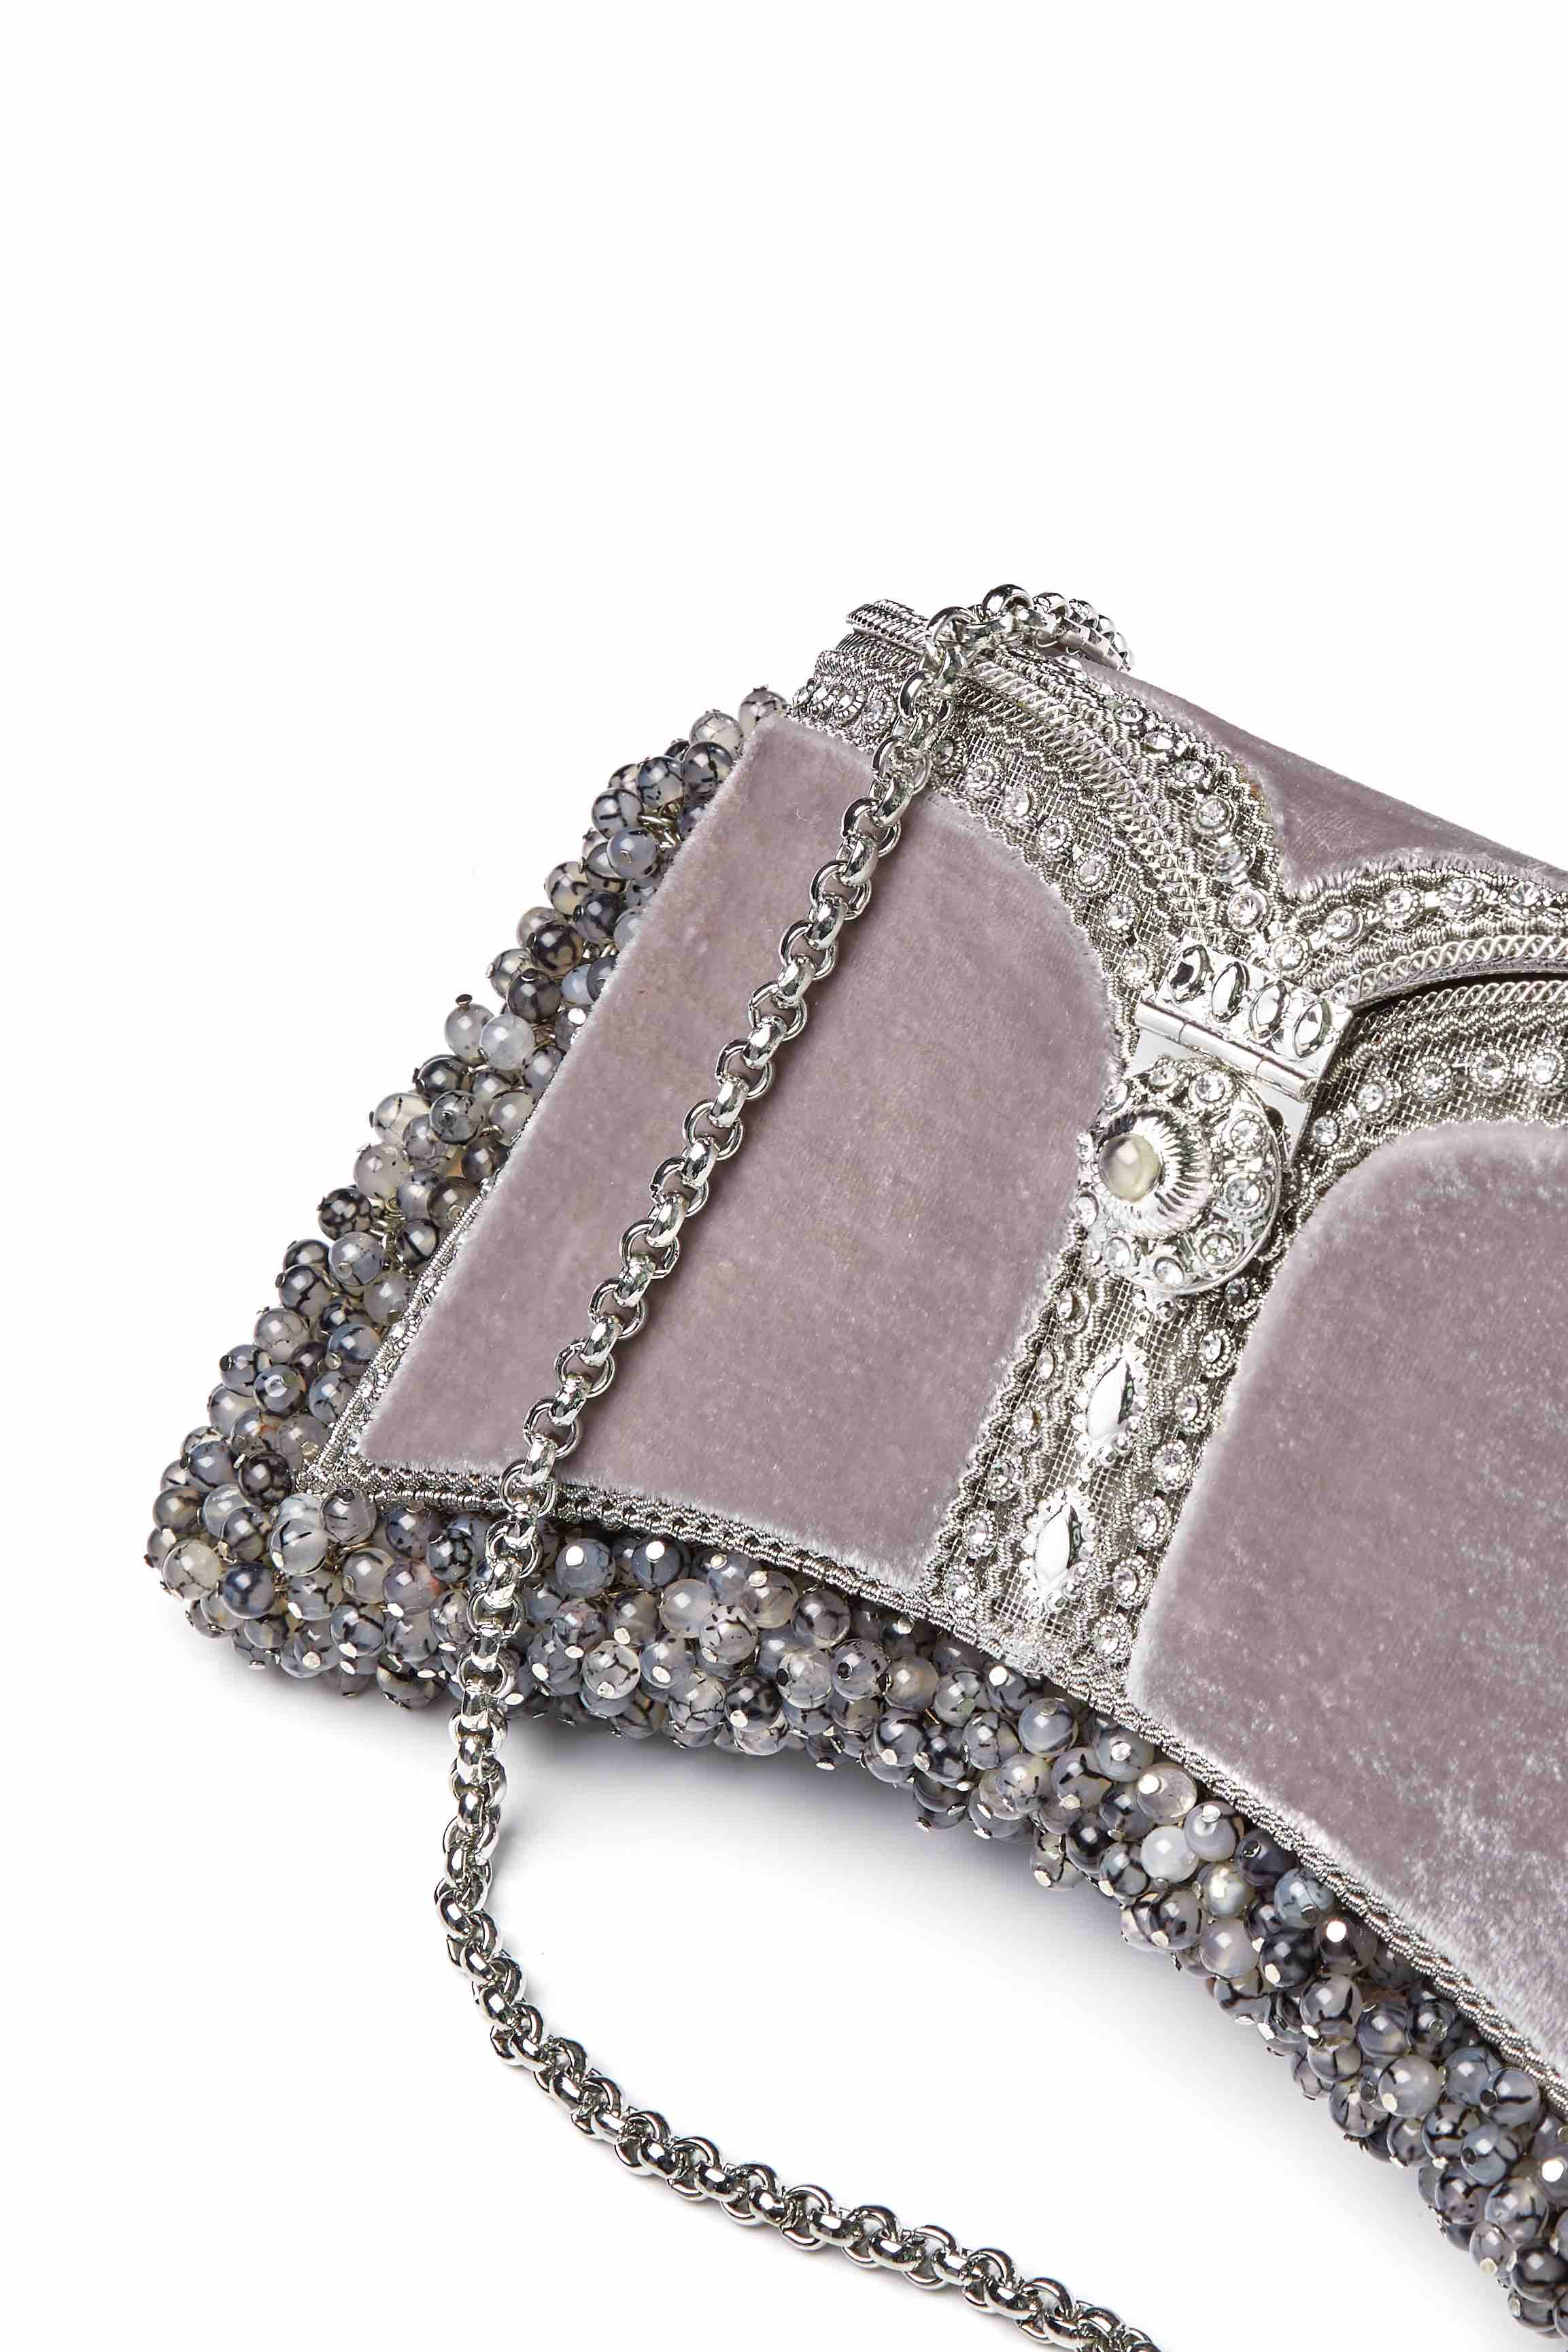 Zeenat Gemstone Clutch | Grounding Moonstone Grey Agate | Limited Edition